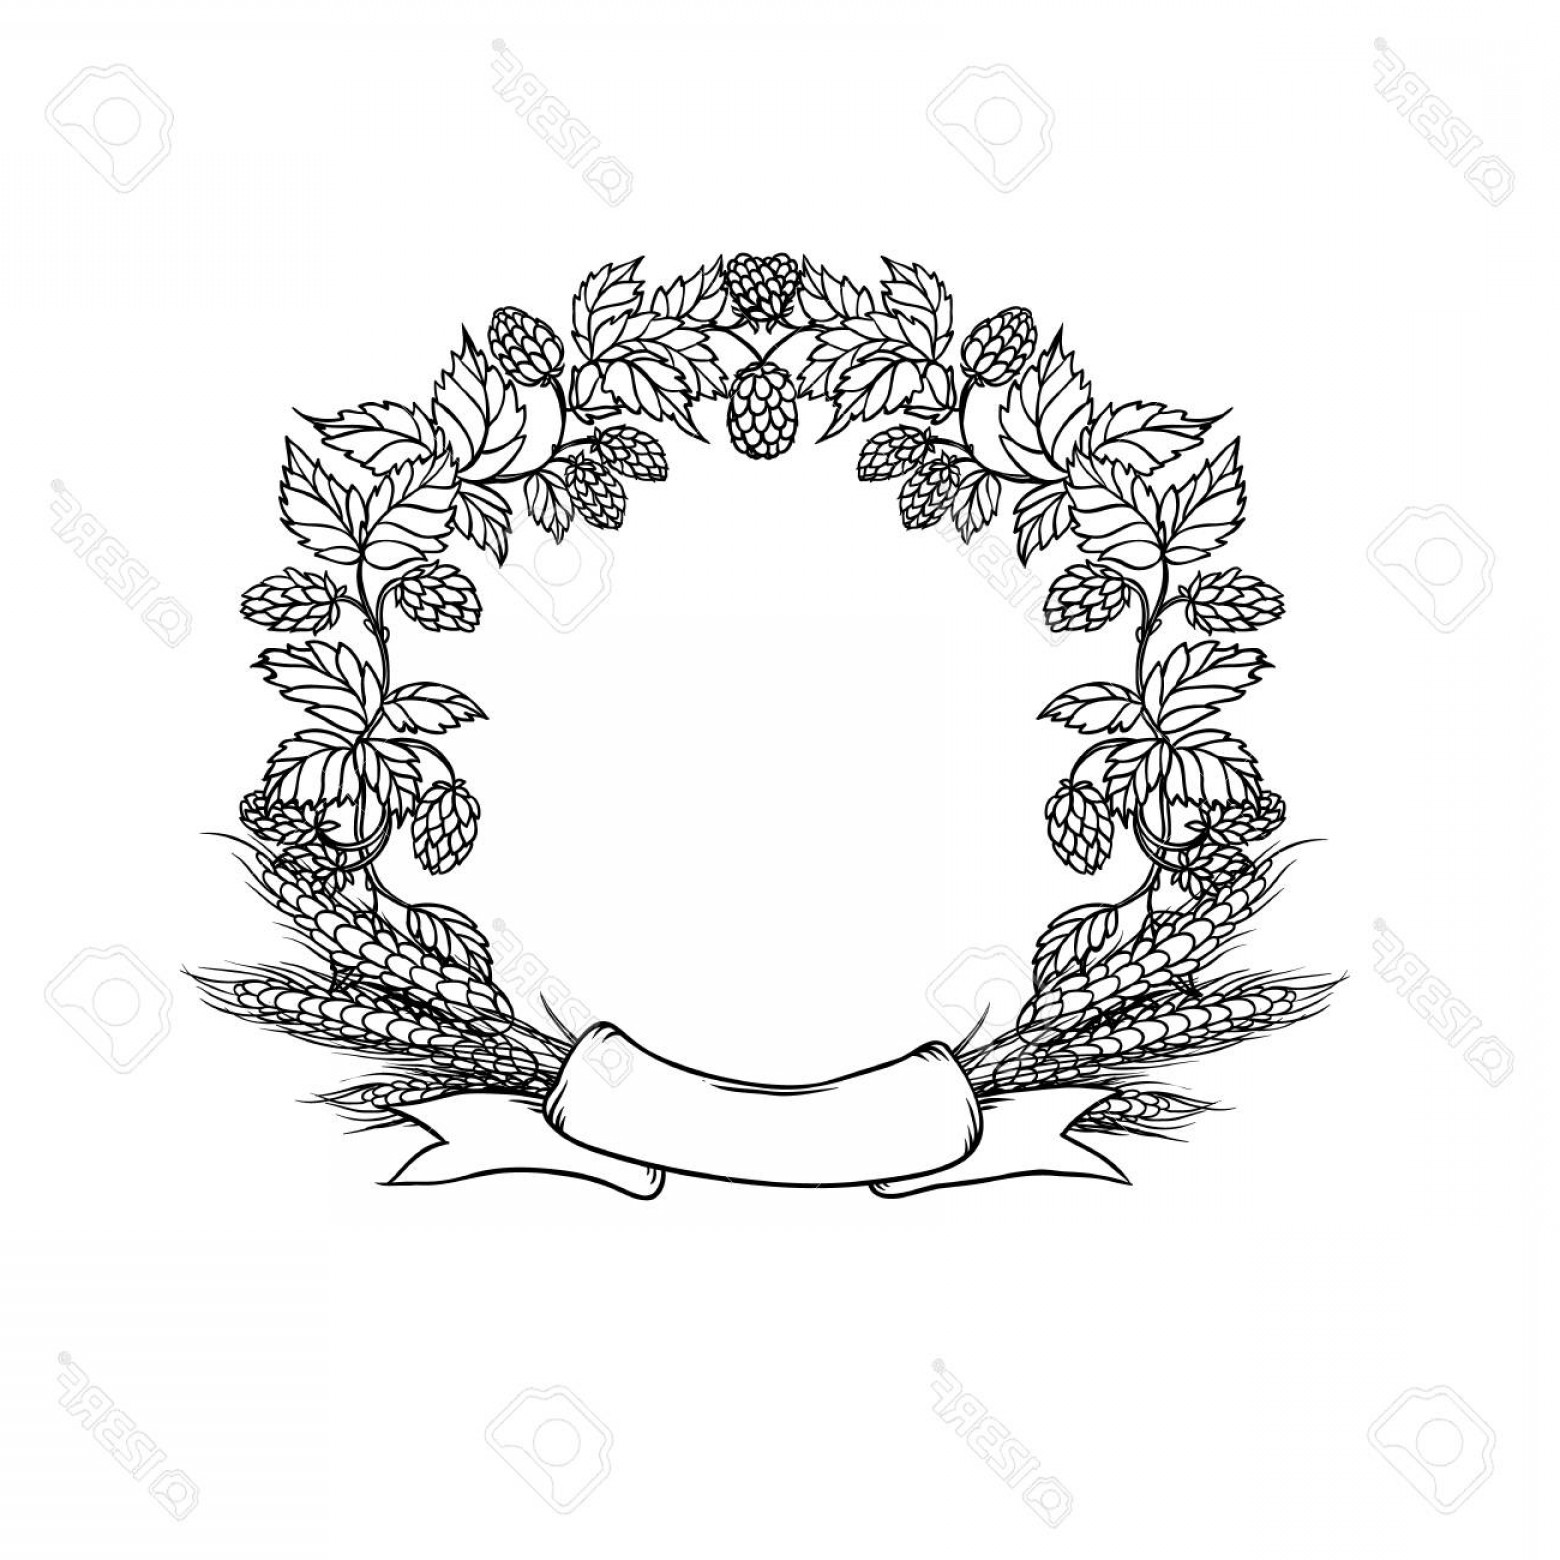 Wreath Circle Logo Vector: Photostock Vector Wreath Circle Frame From Ribbon Hops And Ear Wheat Vector Sketch Black White Illustration Emblem Of